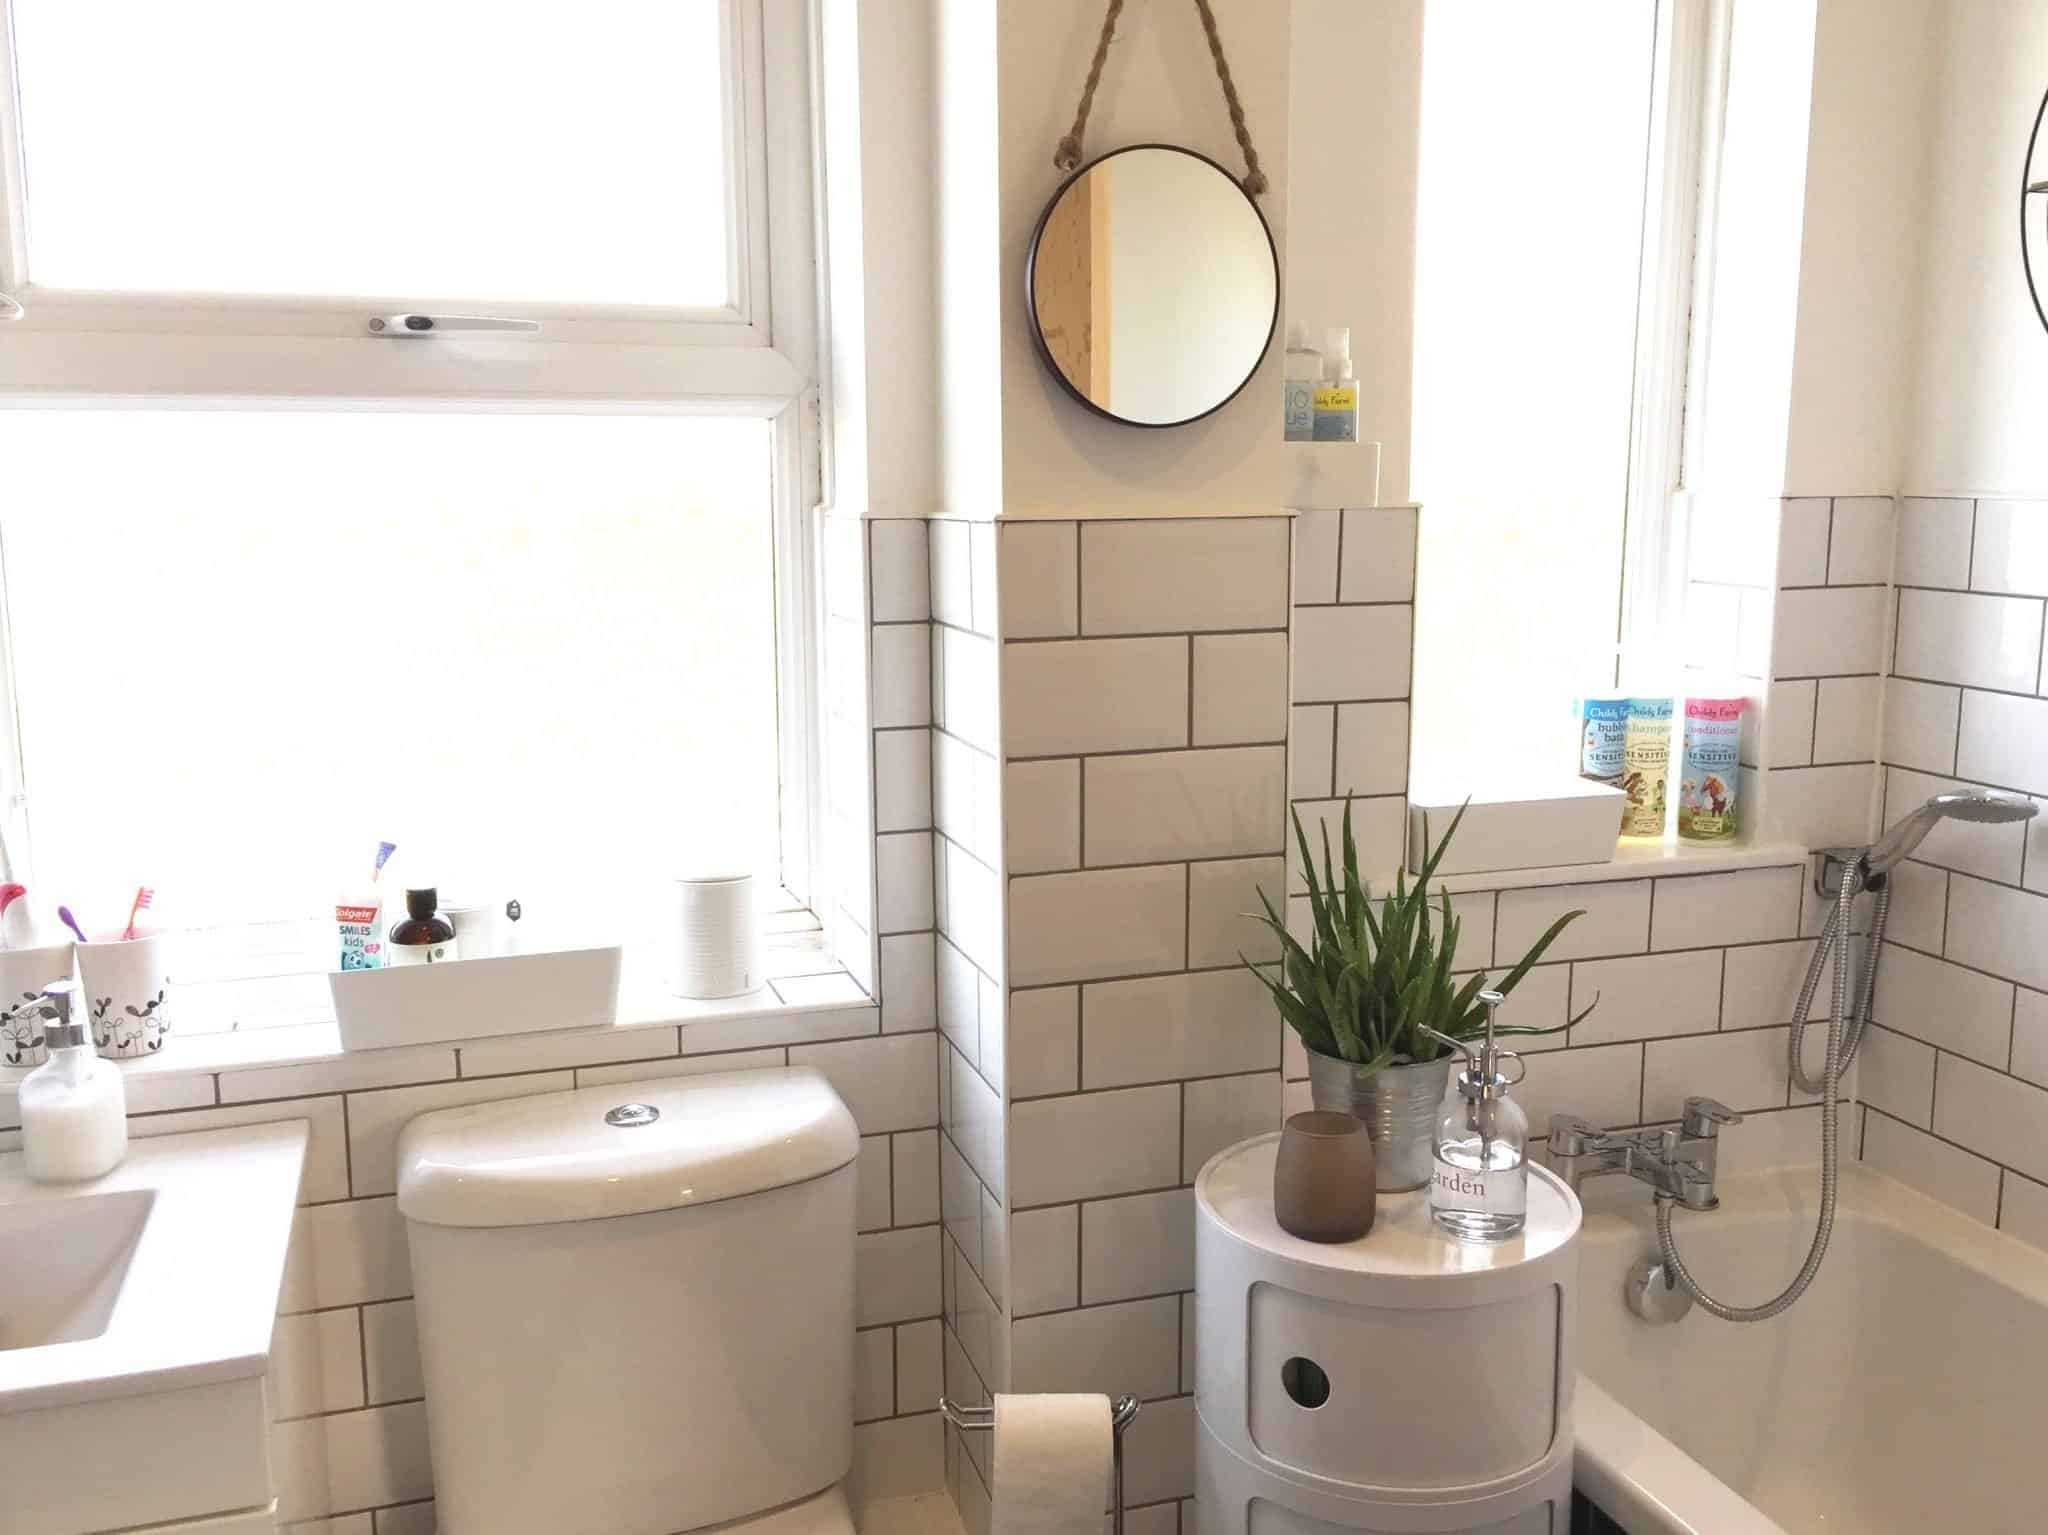 Cool White Octagon Tile With Grey Grout